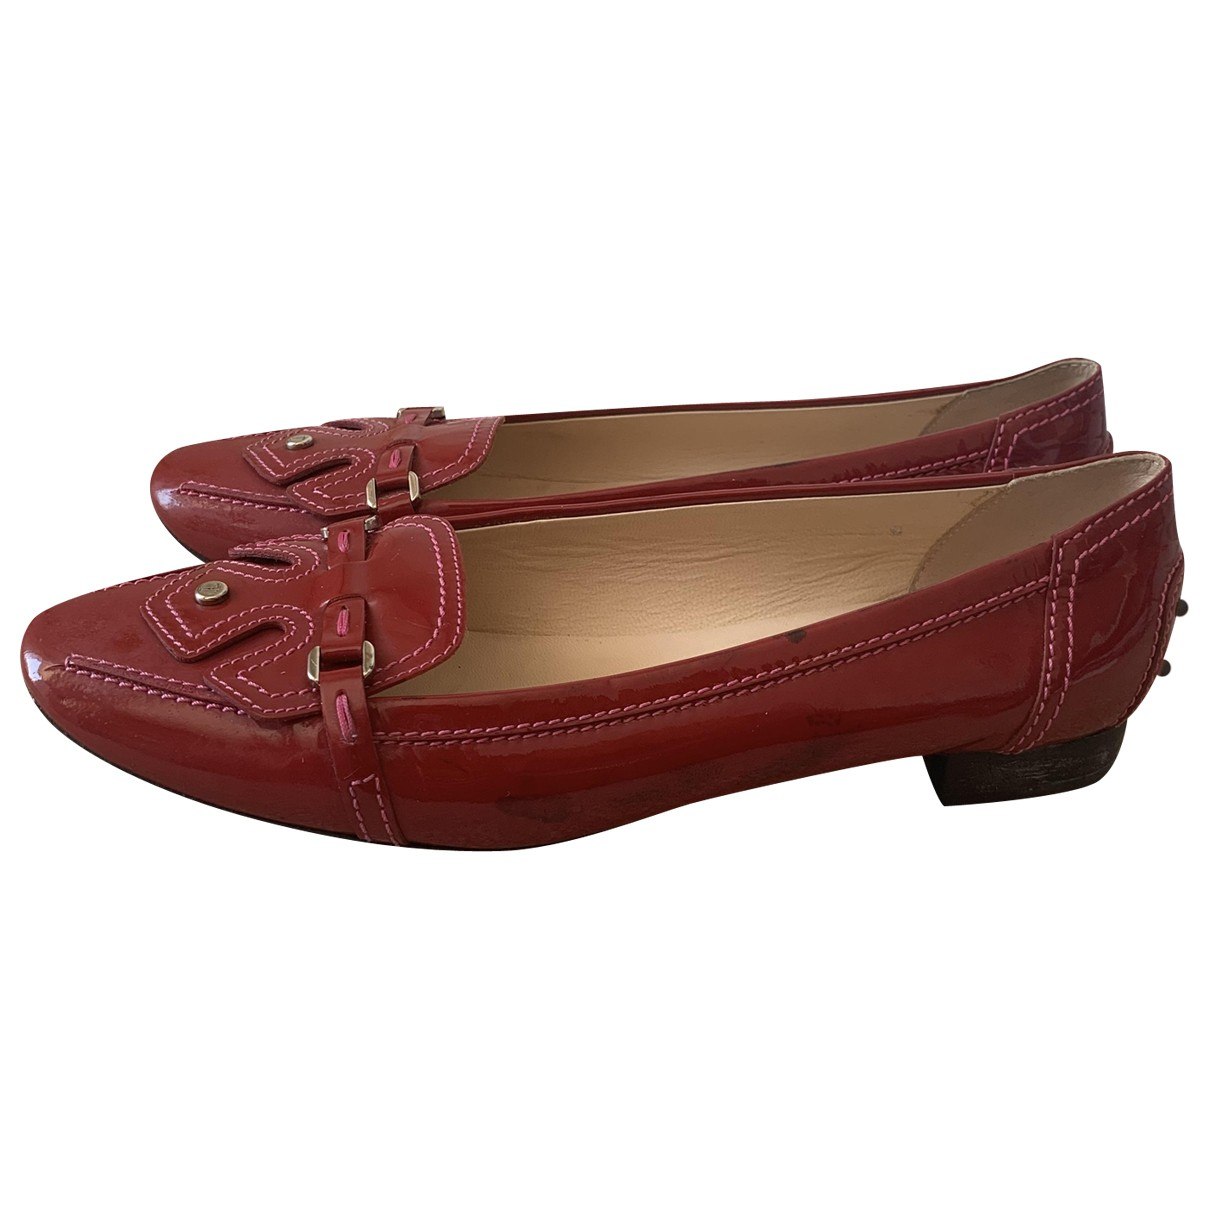 Tod's \N Red Patent leather Flats for Women 38 EU